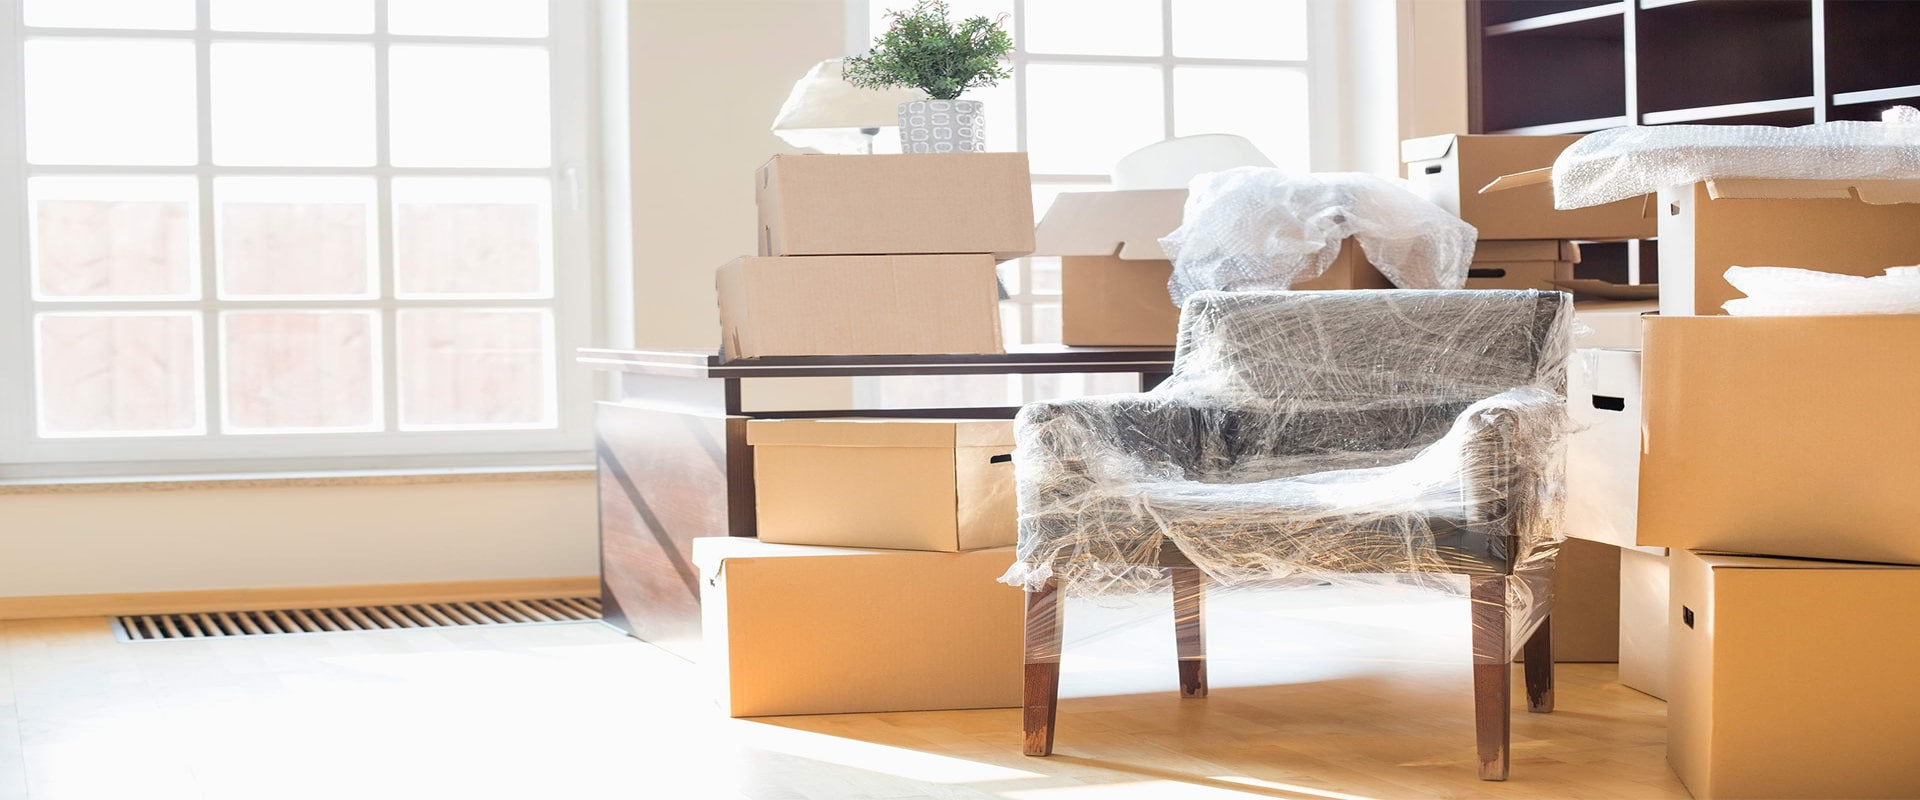 moving service in India by raj international cargo packers and movers